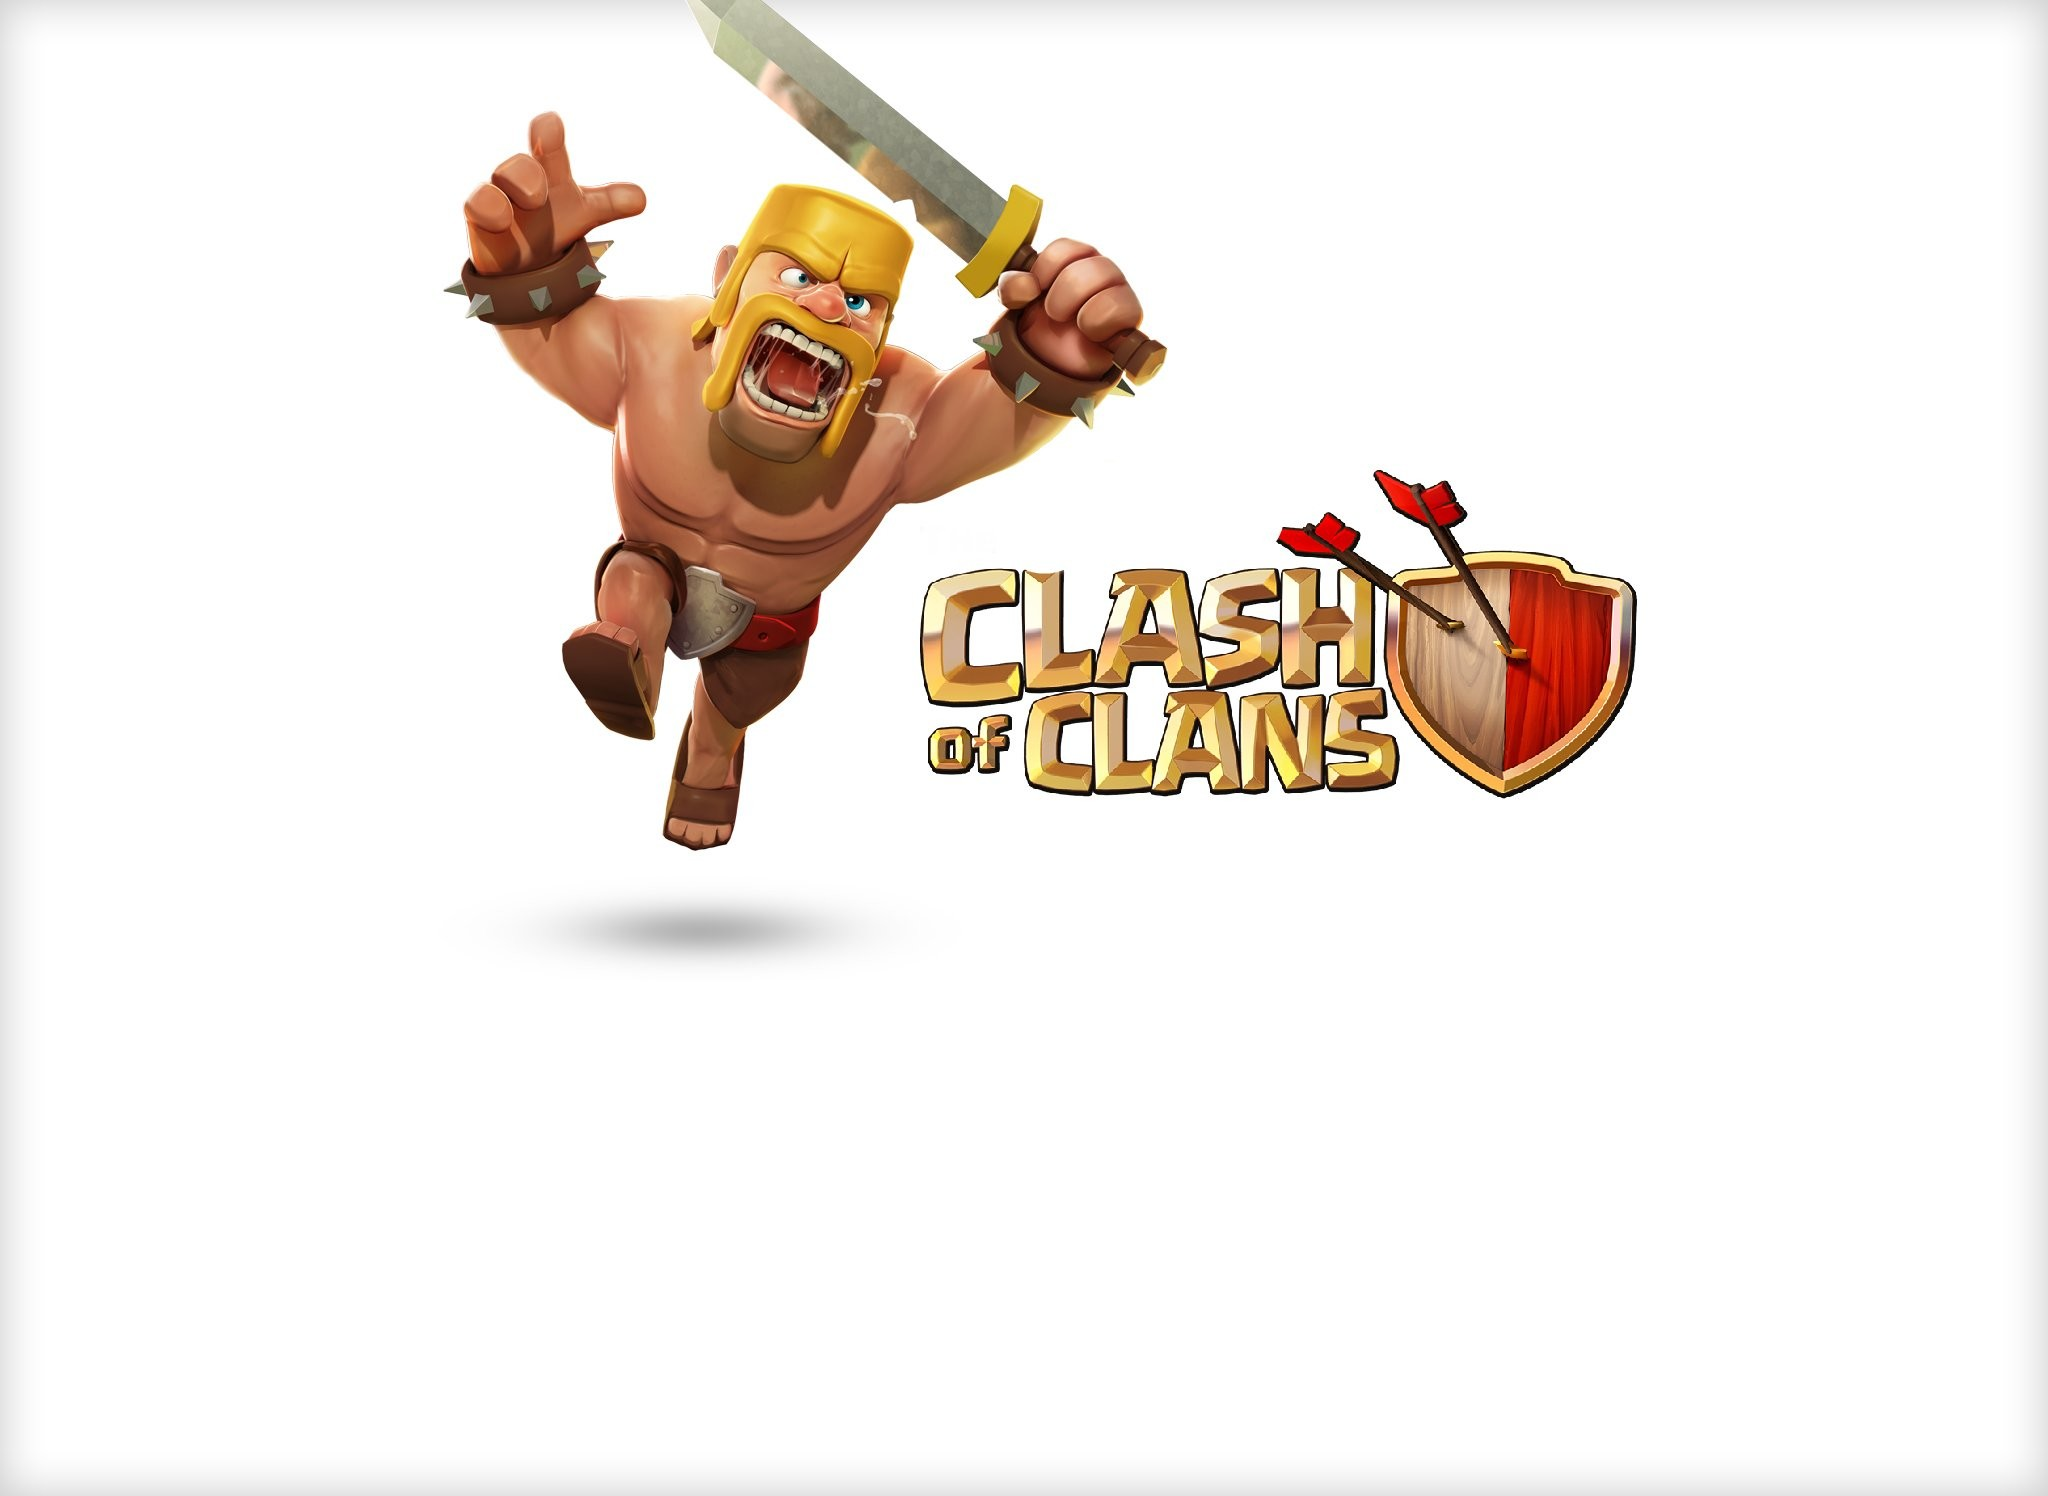 CLASH OF CLANS fantasy fighting family action adventure strategy  1clashclans warrior poster wallpaper | | 580519 | WallpaperUP